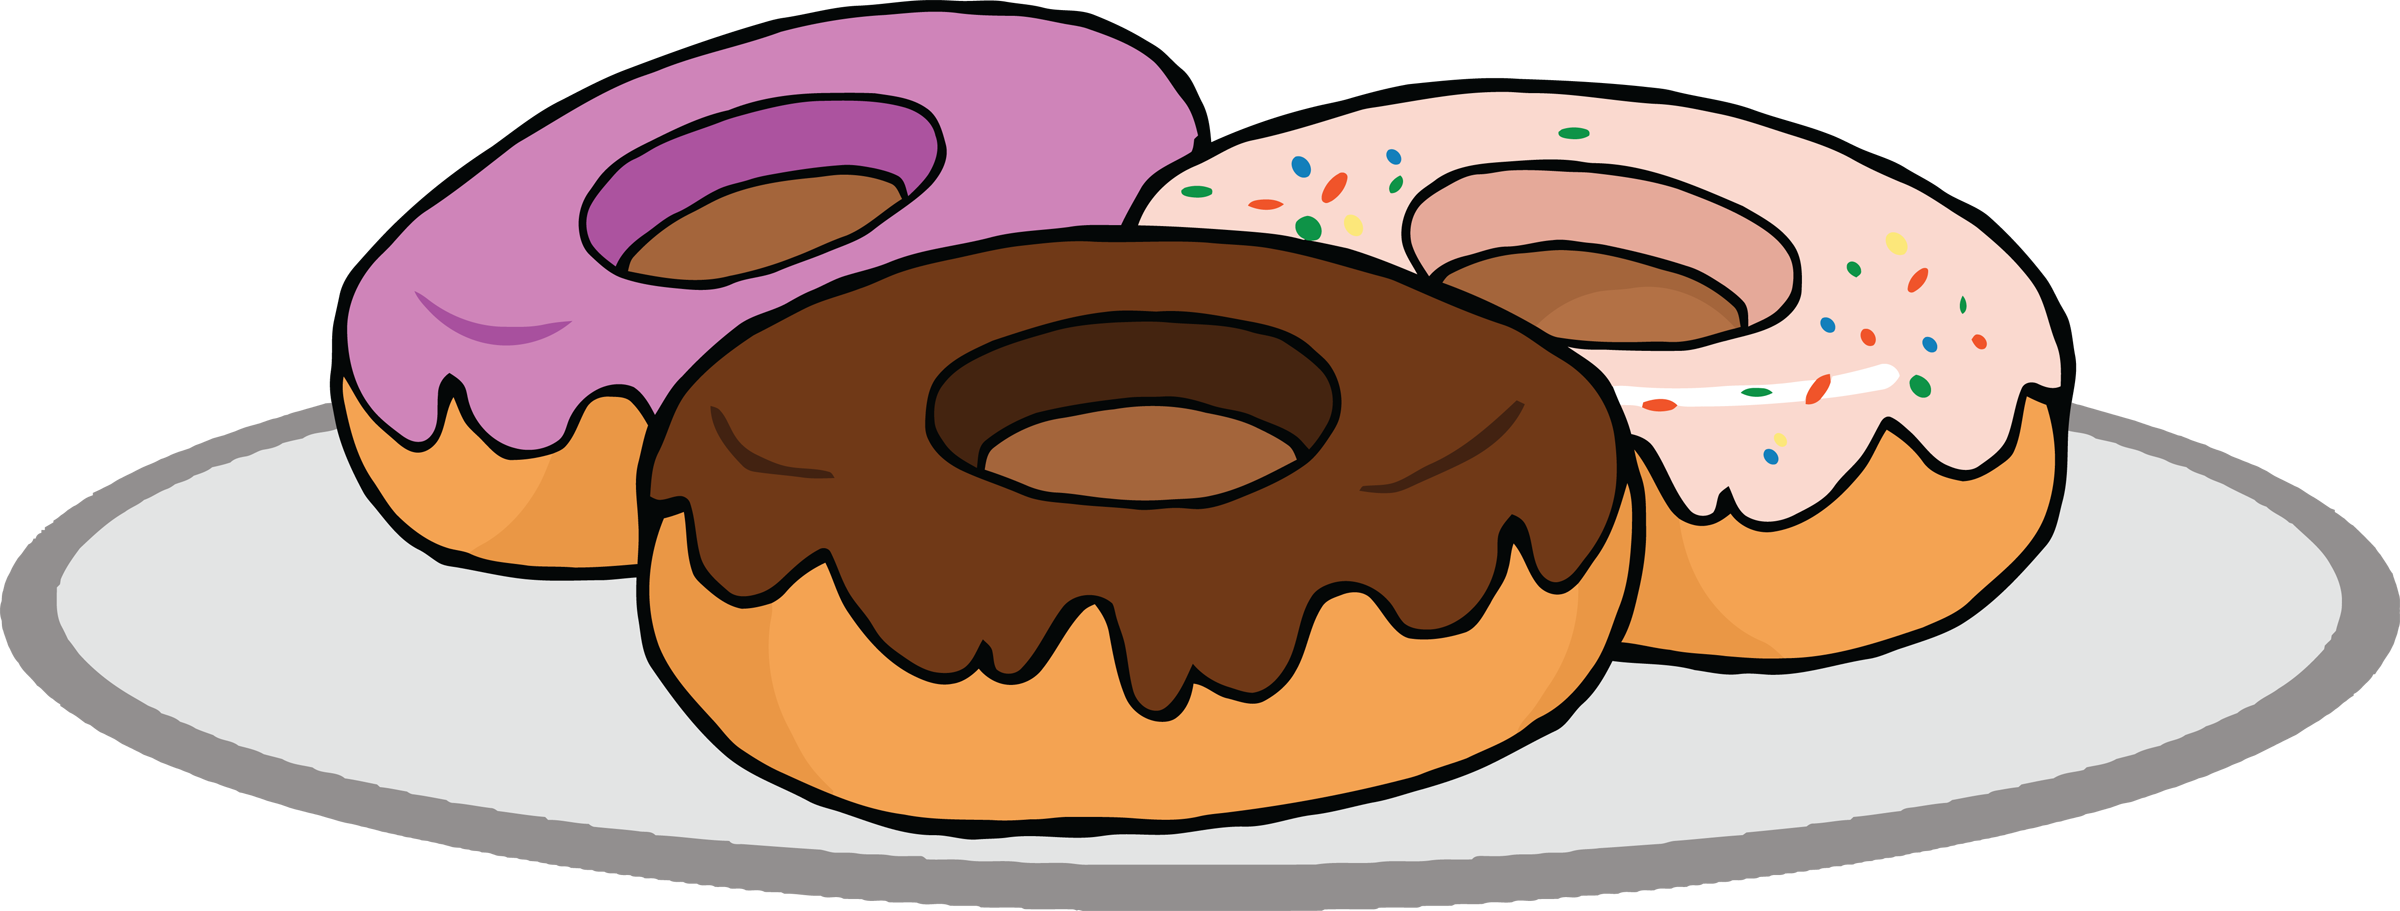 Donut Clipart - Clipart Kid